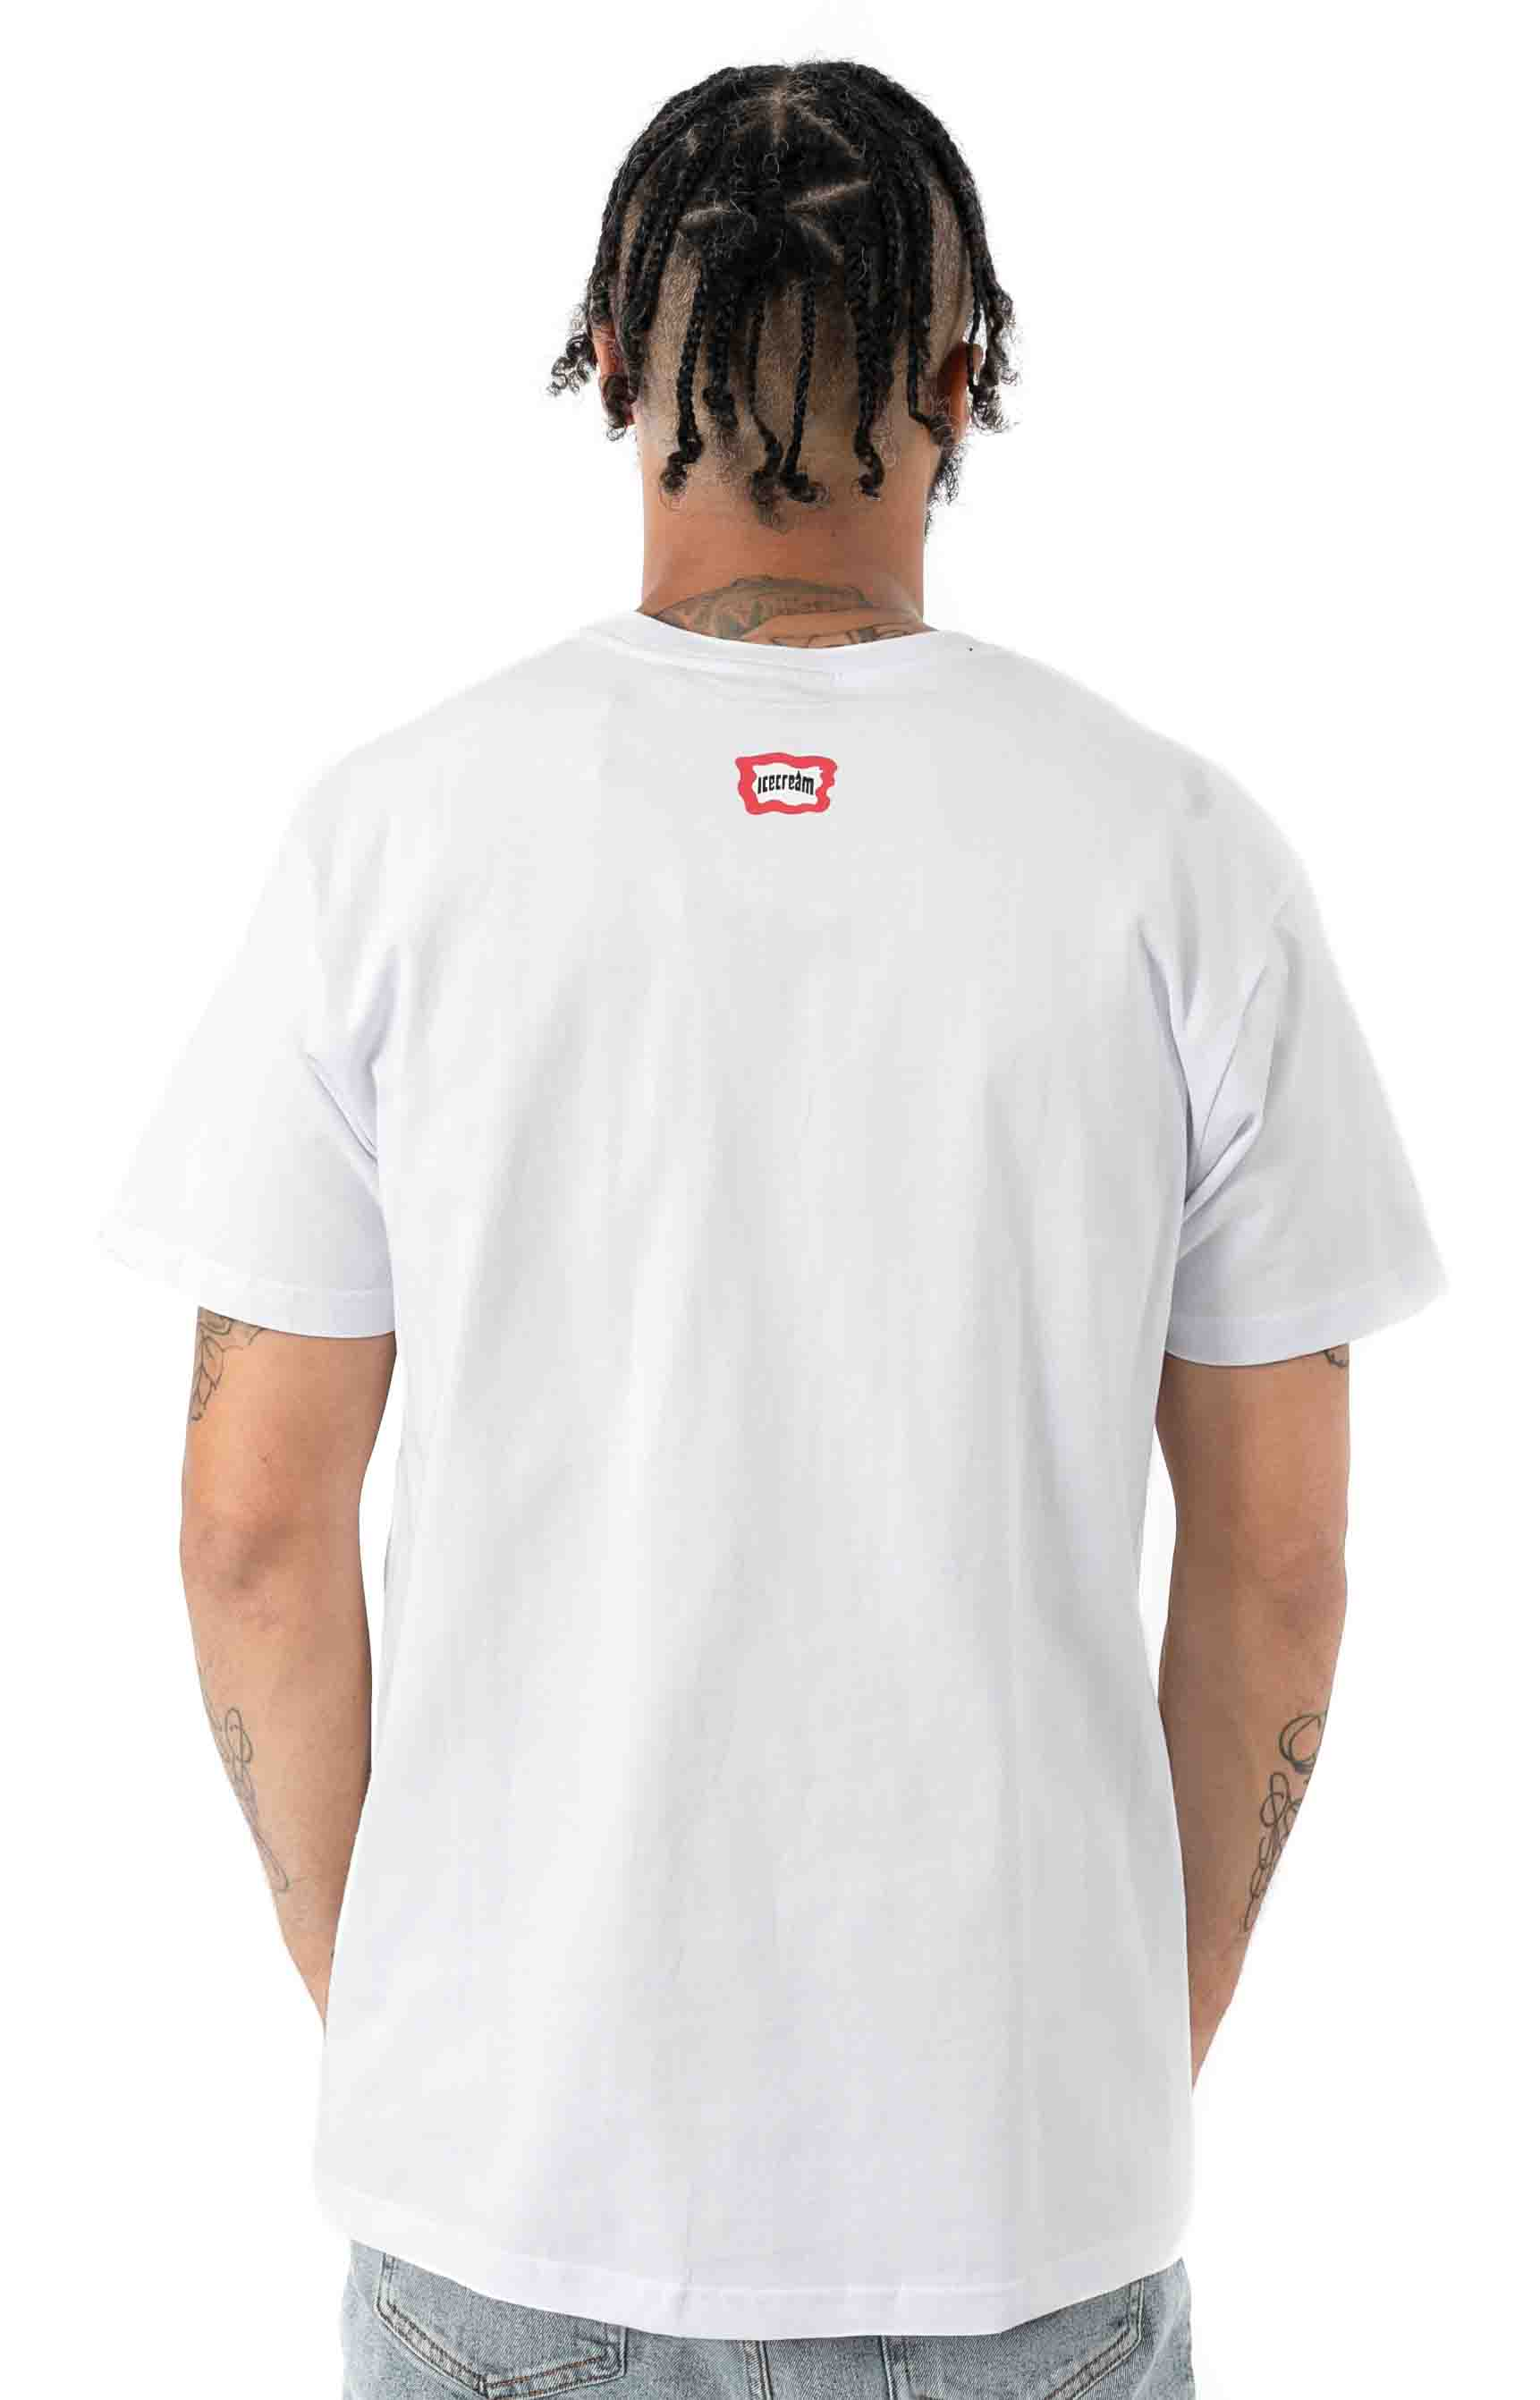 Bling T-Shirt - White  3